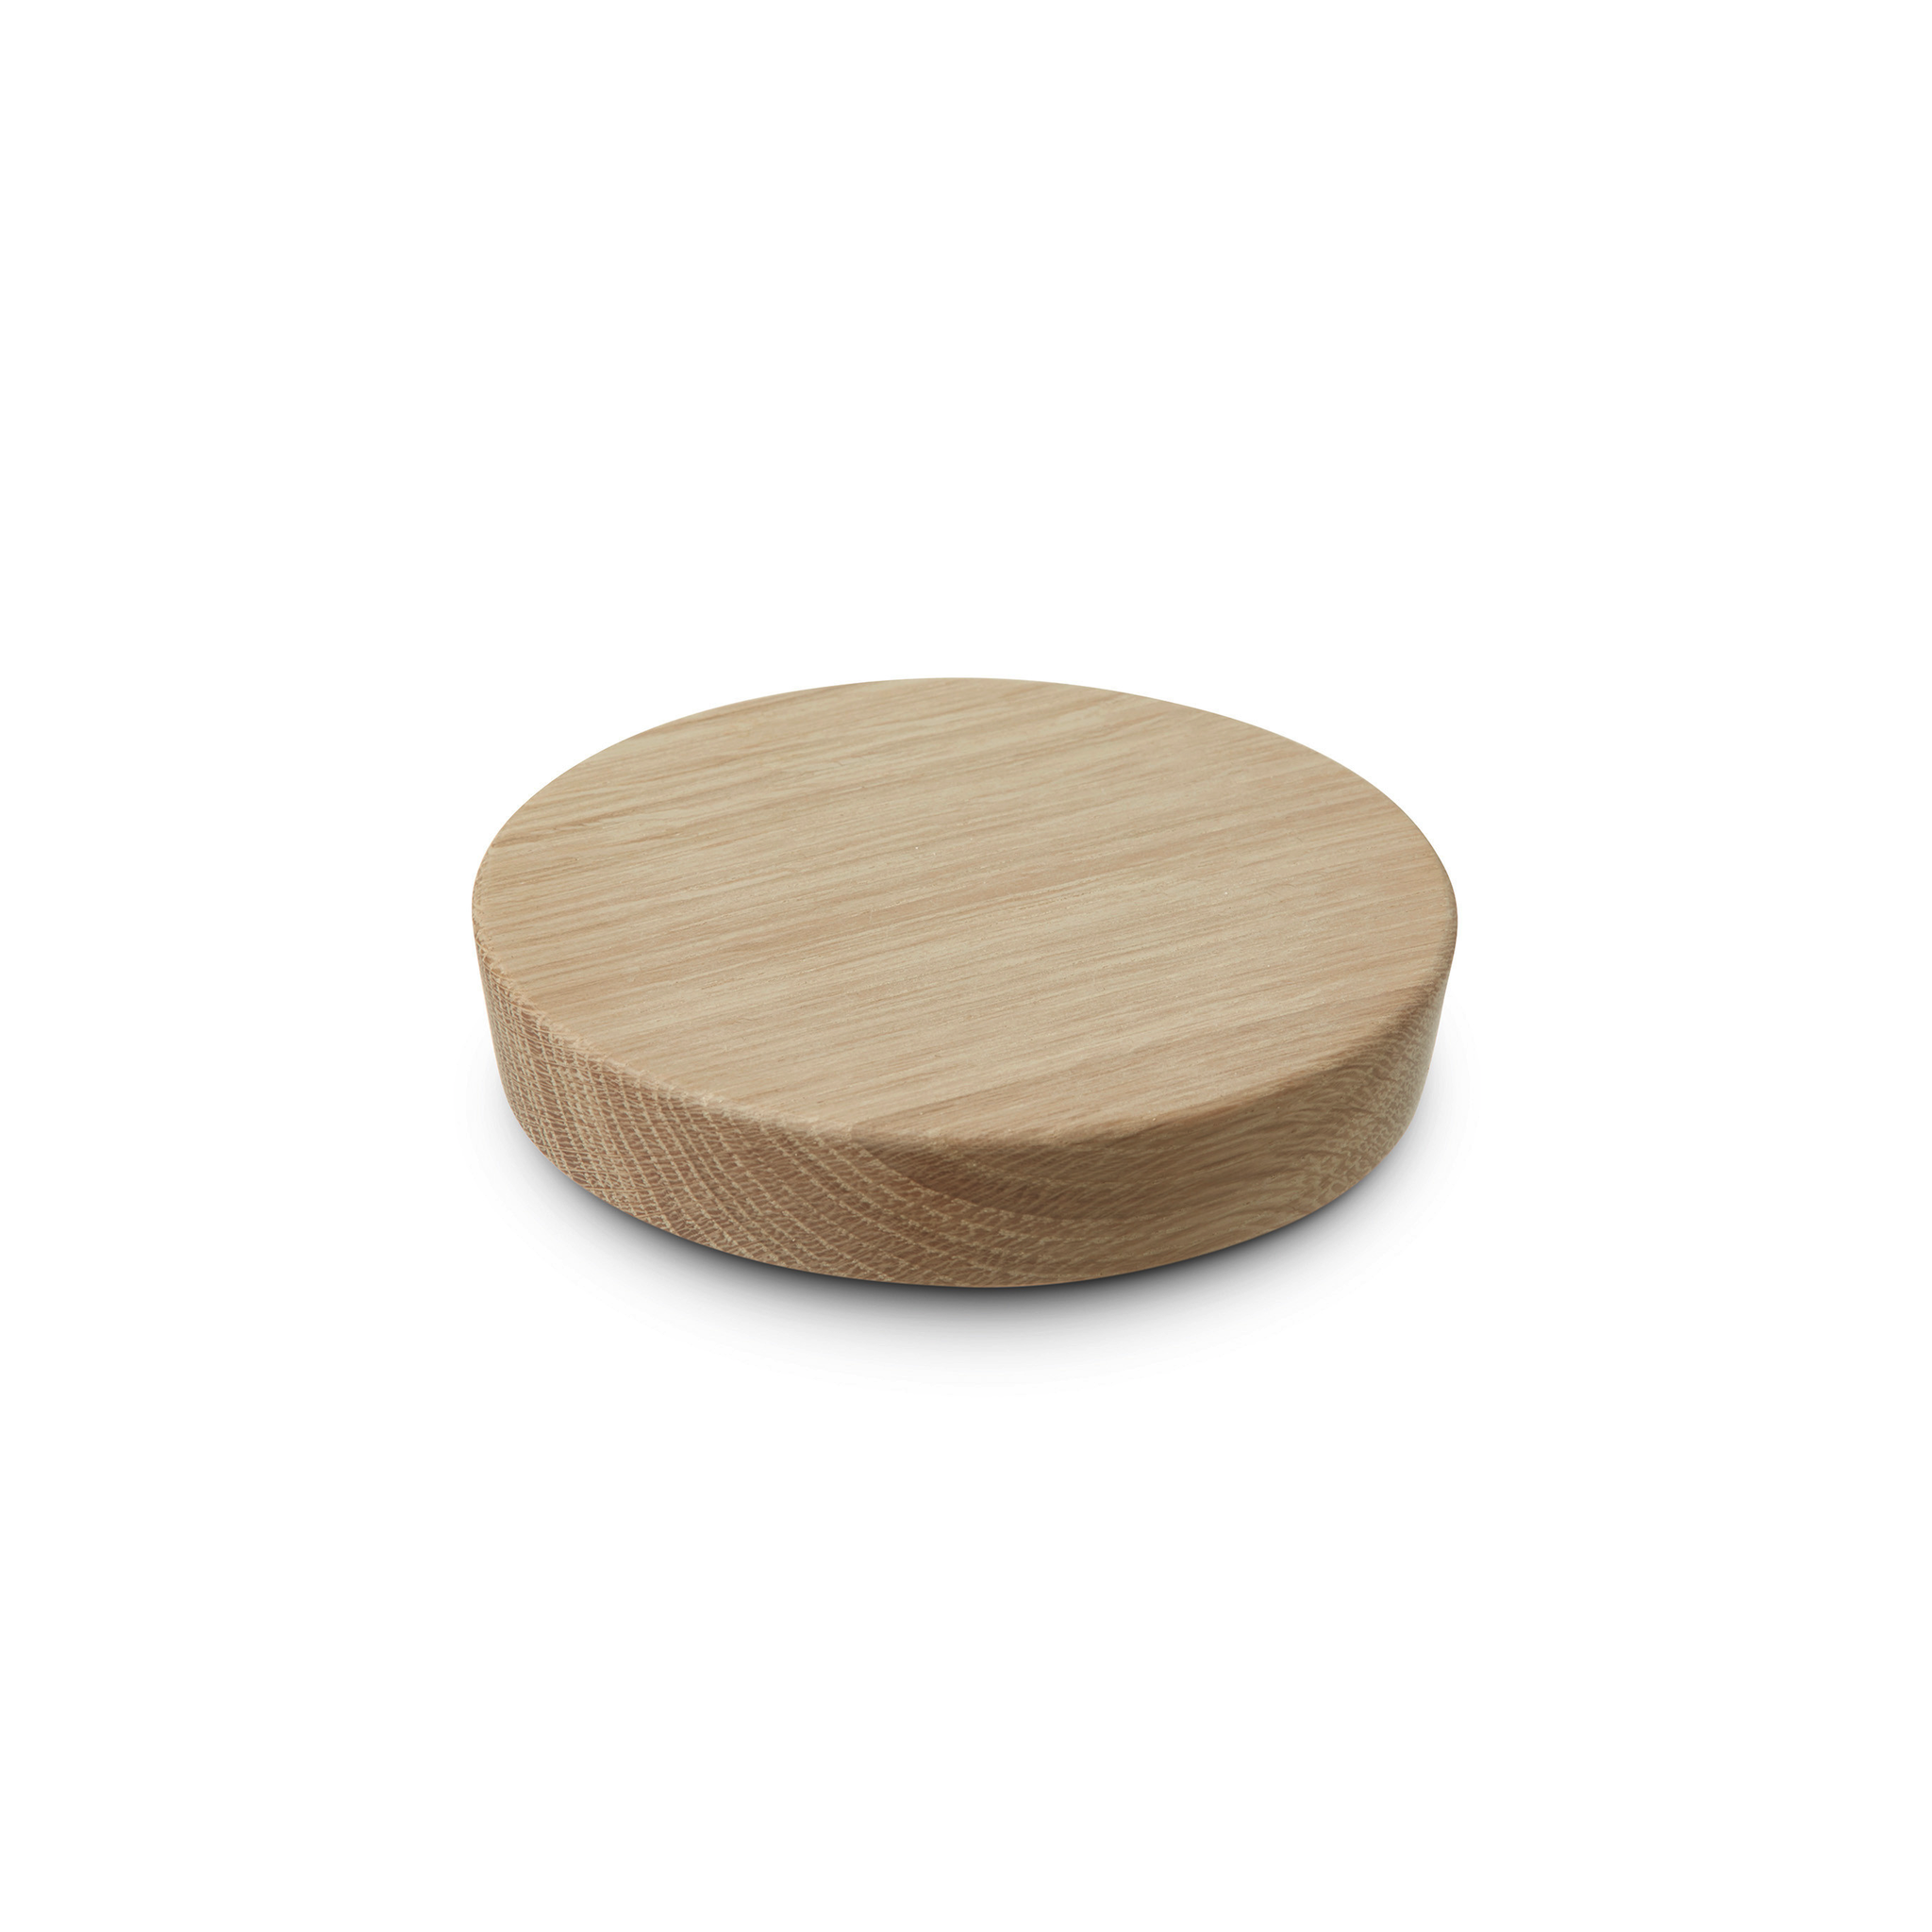 Oak Lid for Glass Storage Jar